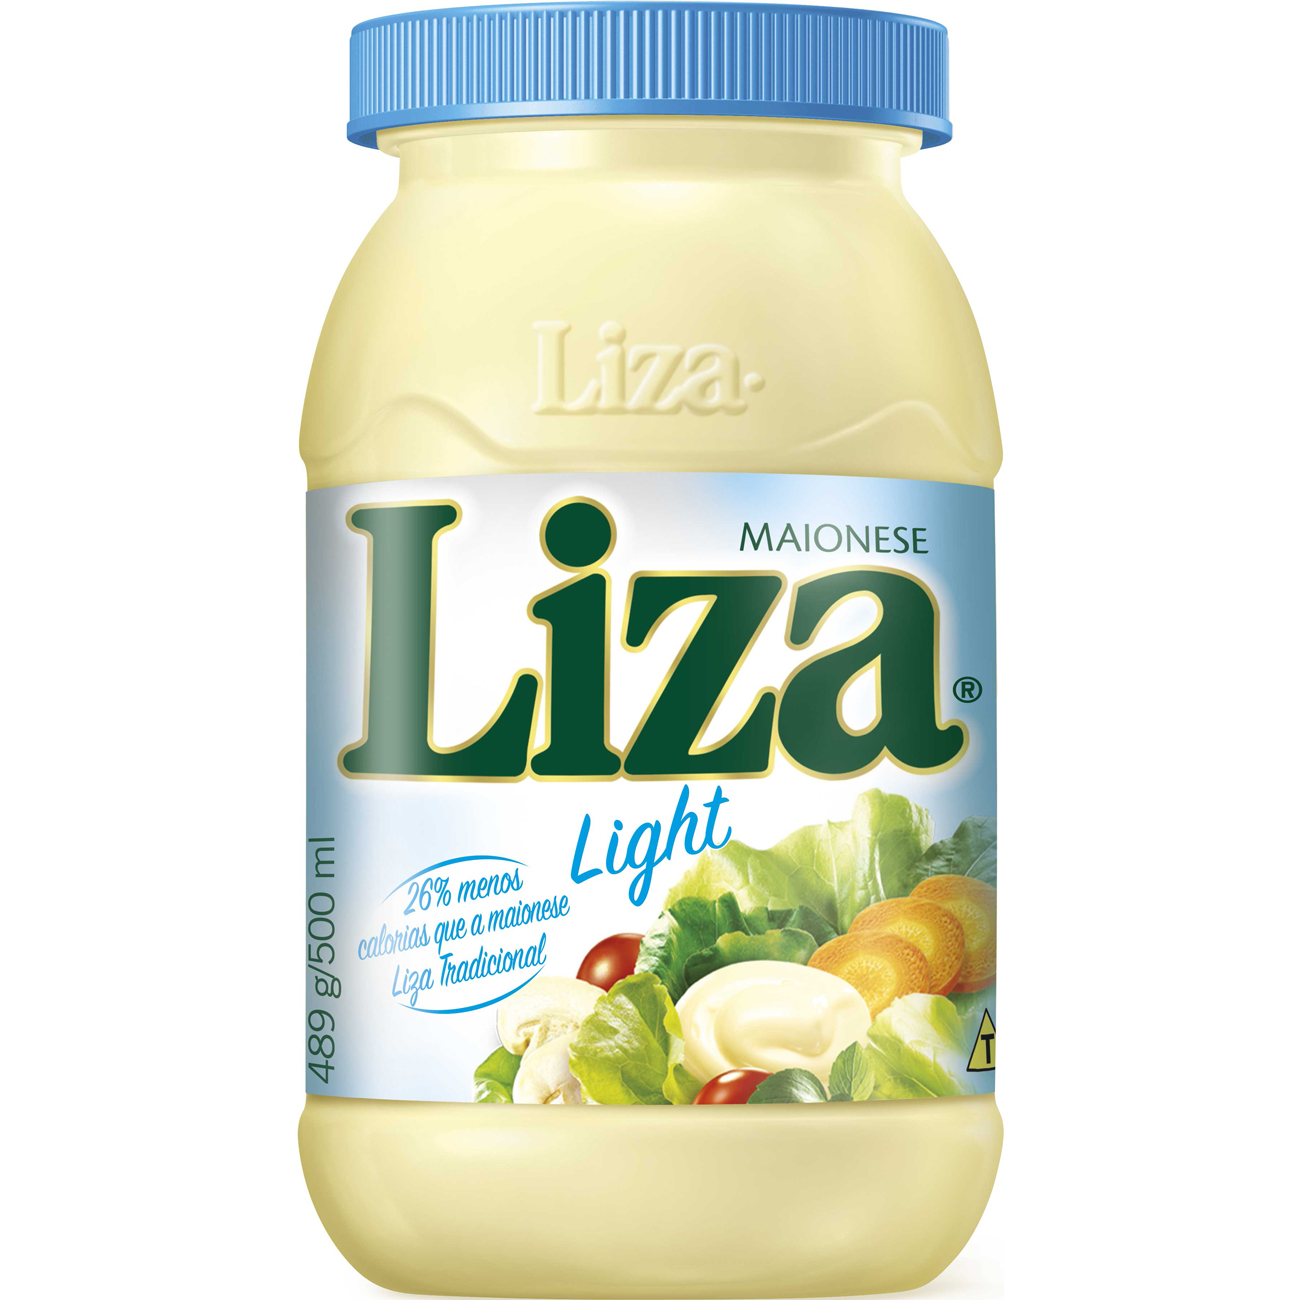 Maionese Liza Light 500g